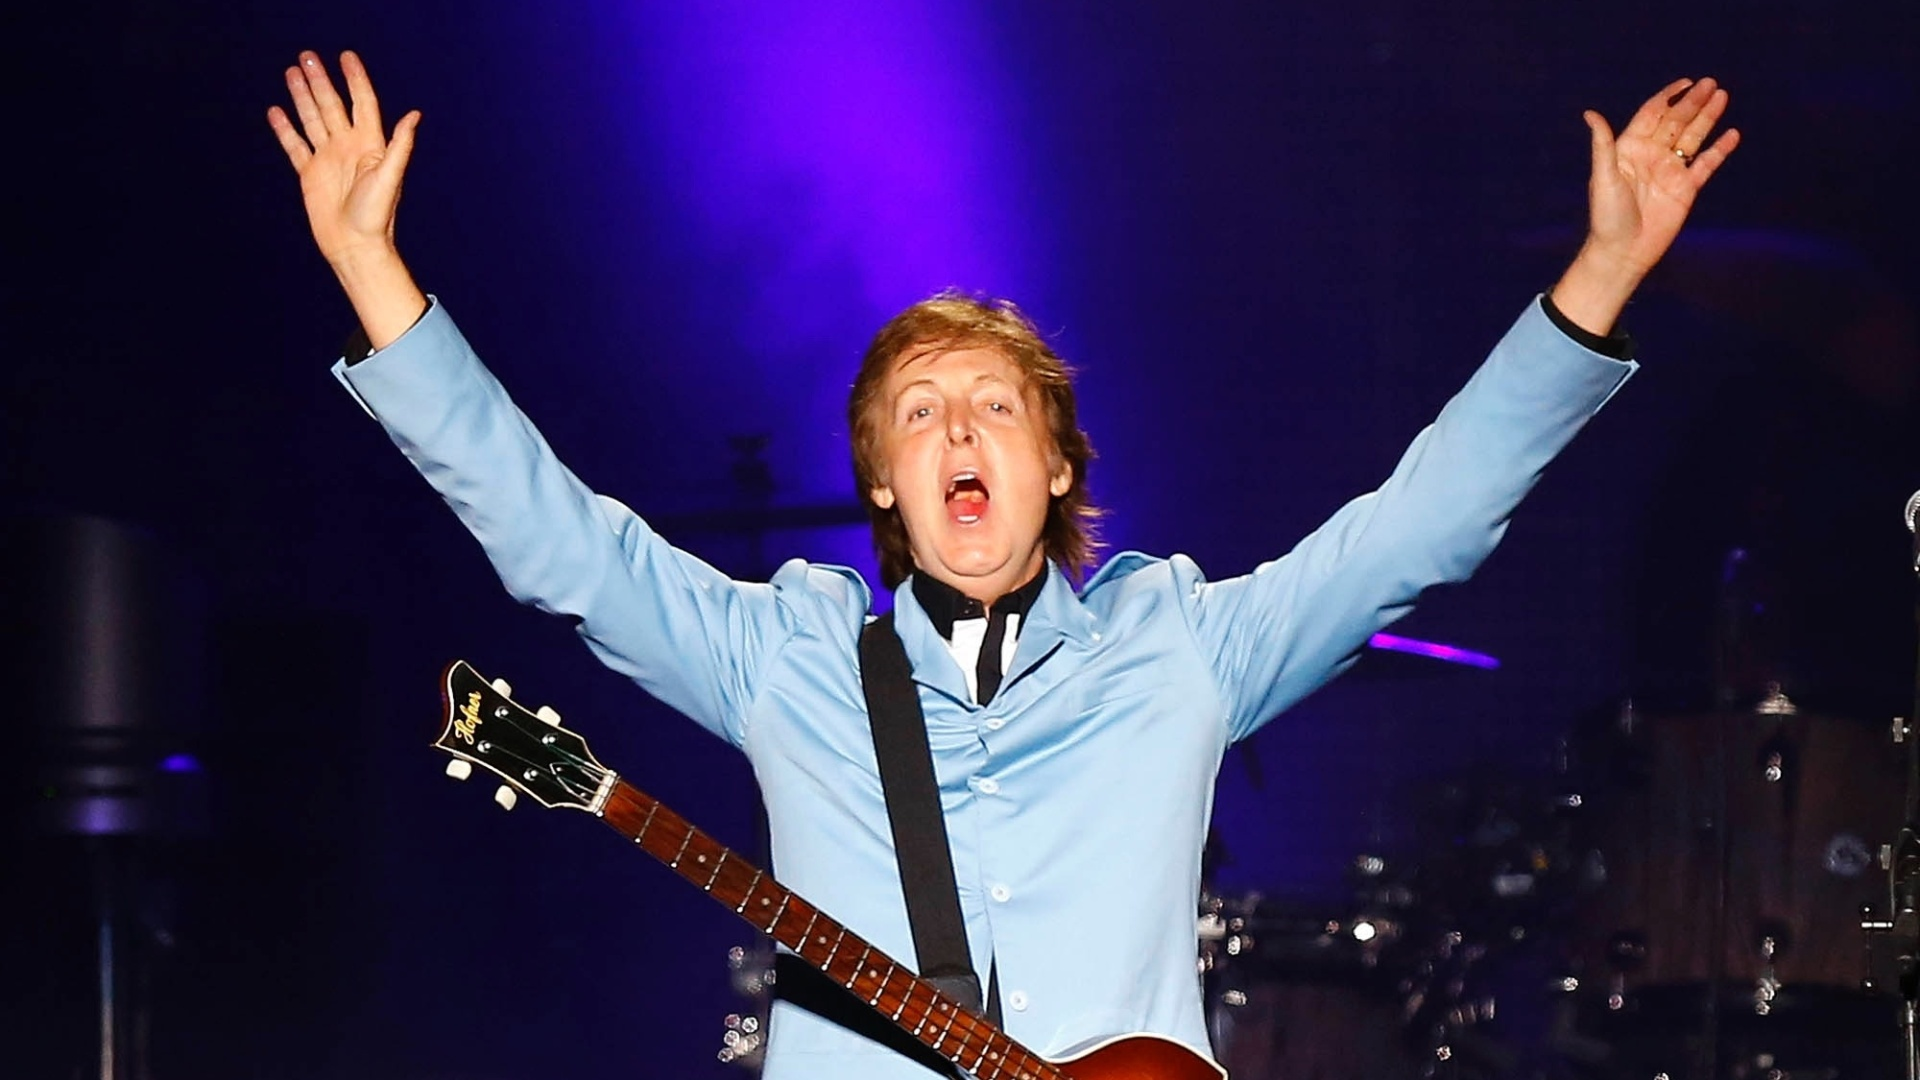 4.mai.2013 - Paul McCartney se apresenta no Mineiro, em Belo Horizonte